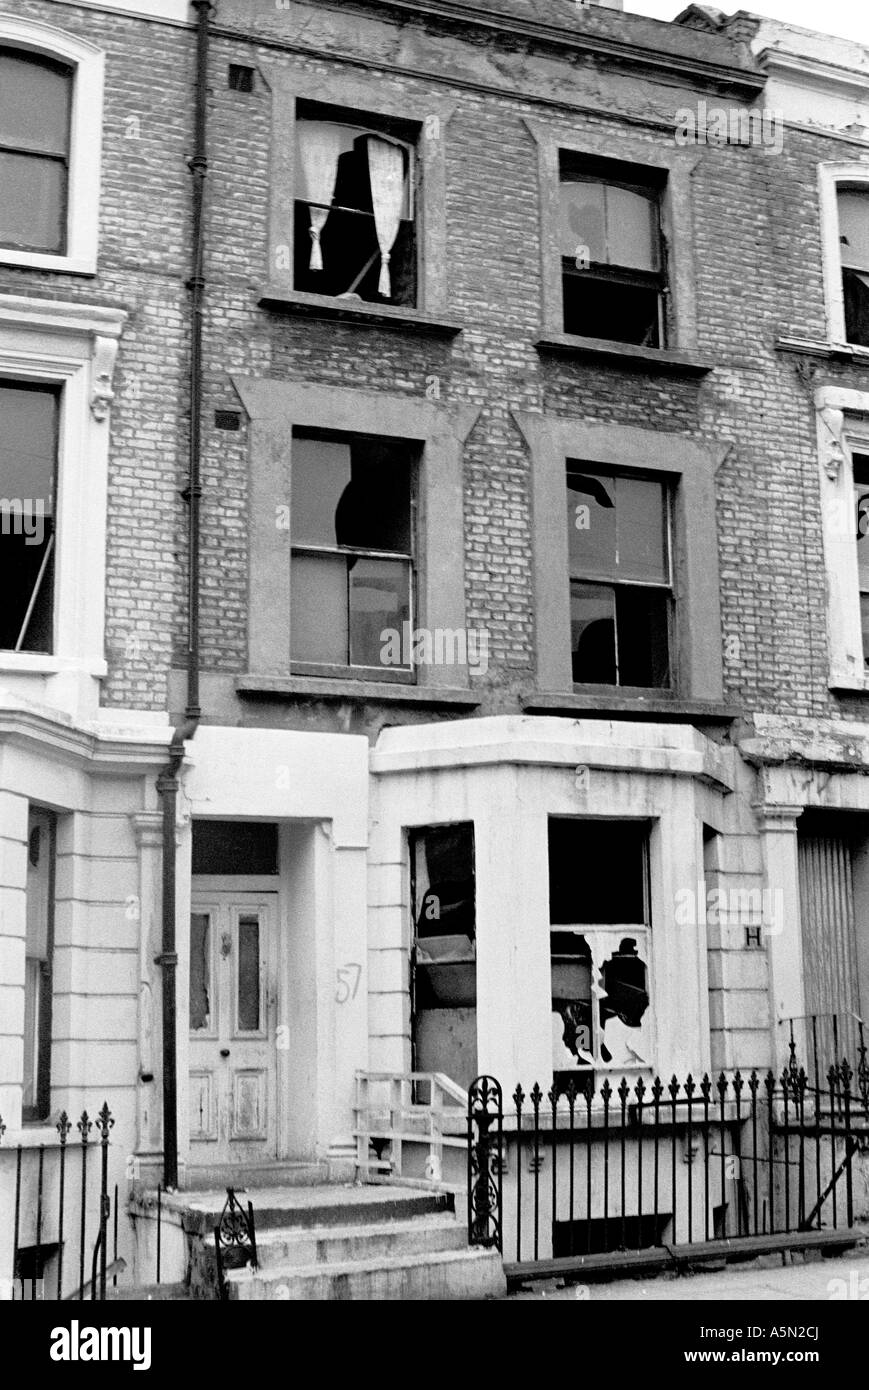 Dilapidated house in Notting Hill Gate, London, 1975. - Stock Image